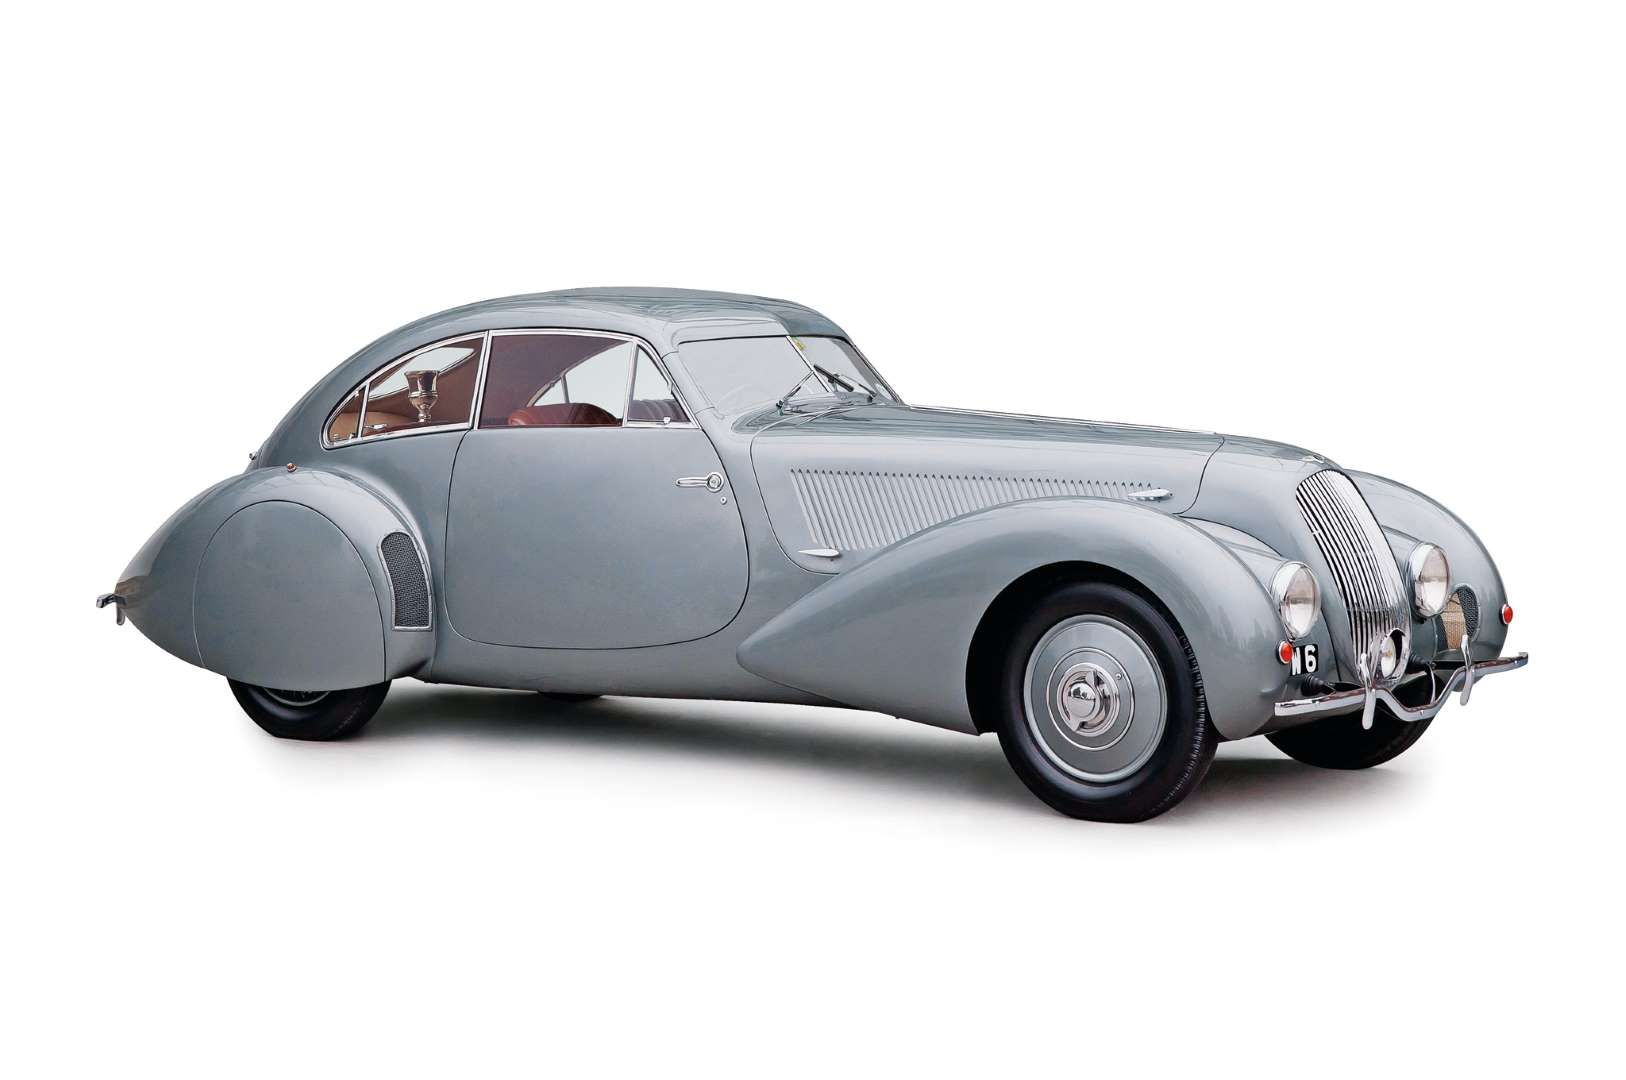 1938 Bentley Embiricos - Provided by Automobile